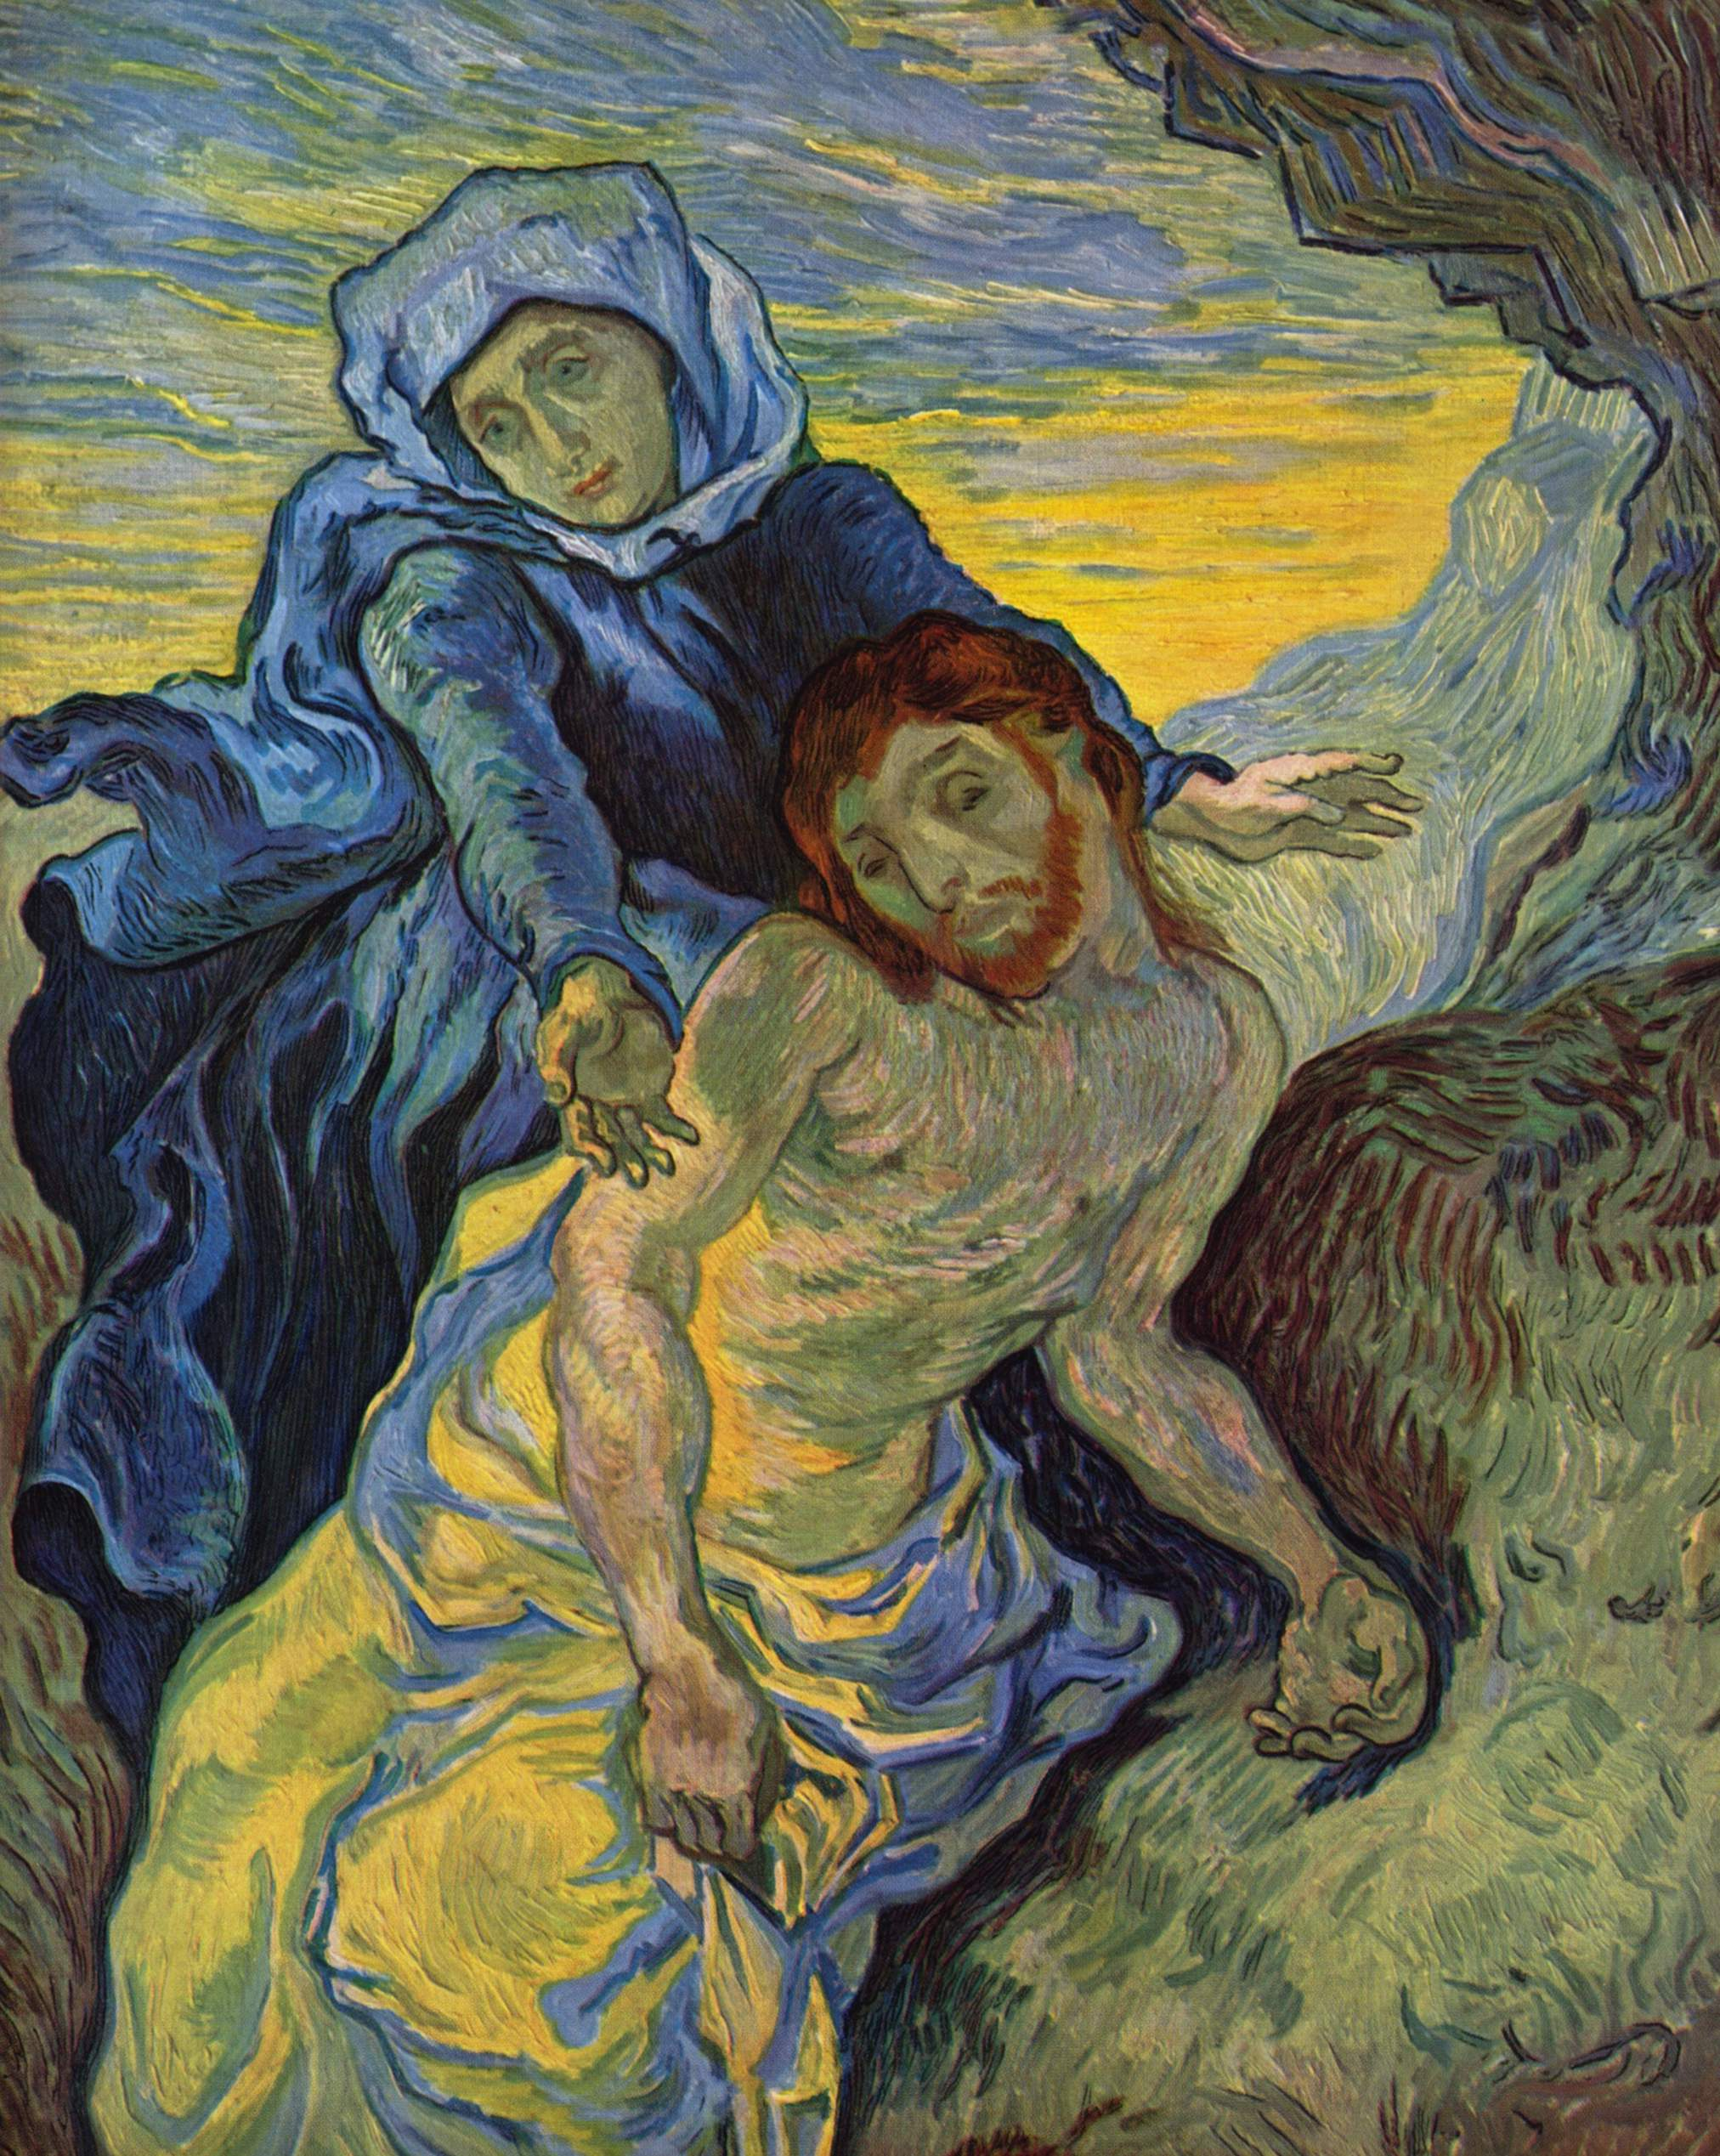 vincent van gogh jesus was an artist greater than all other